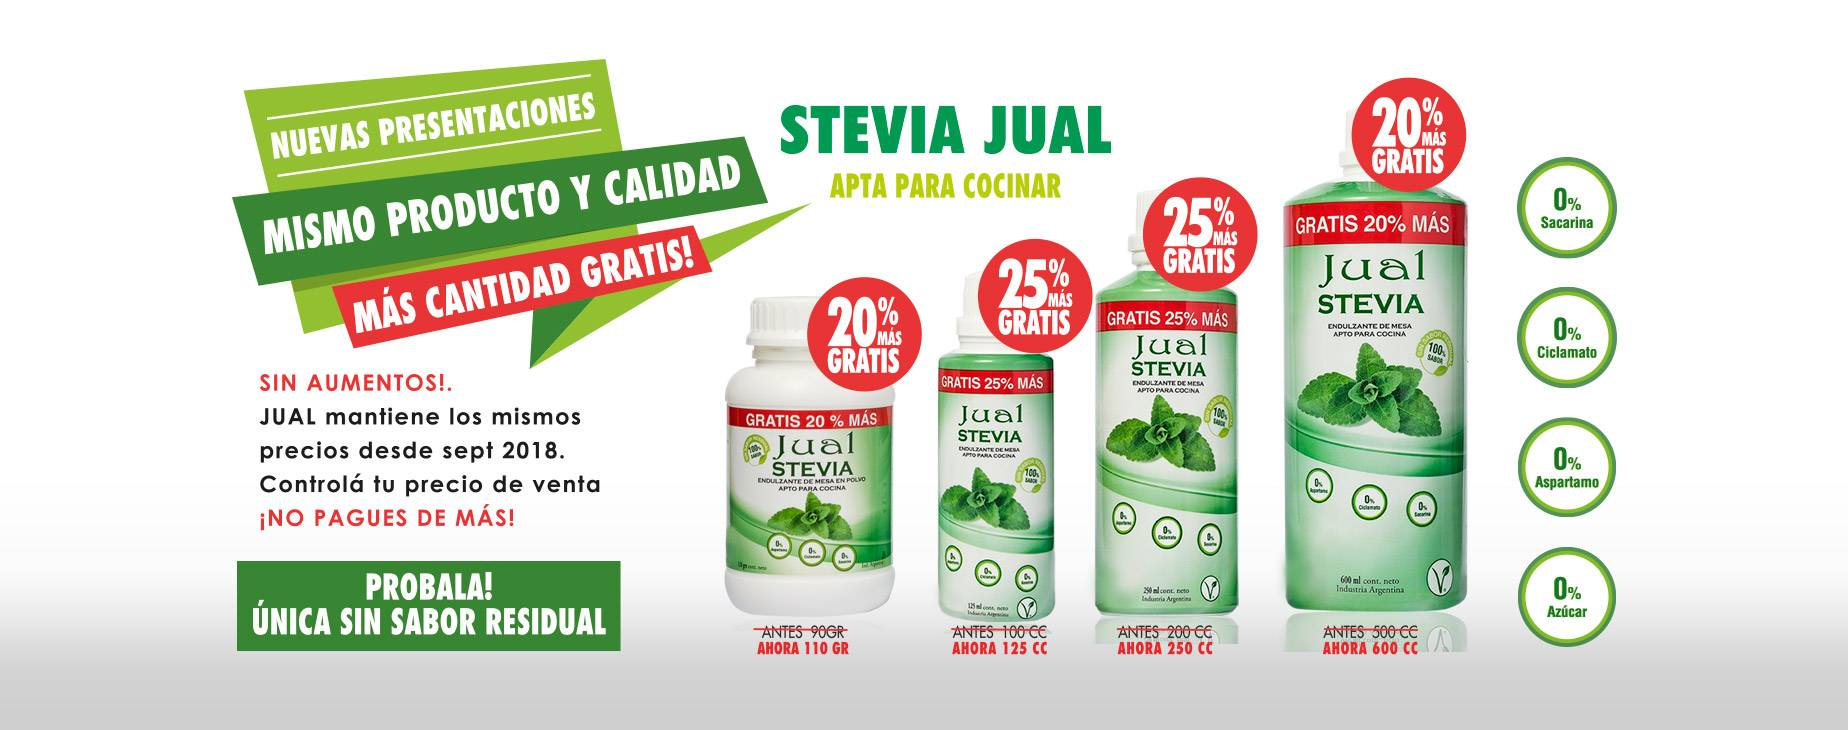 New stevia jual packaging